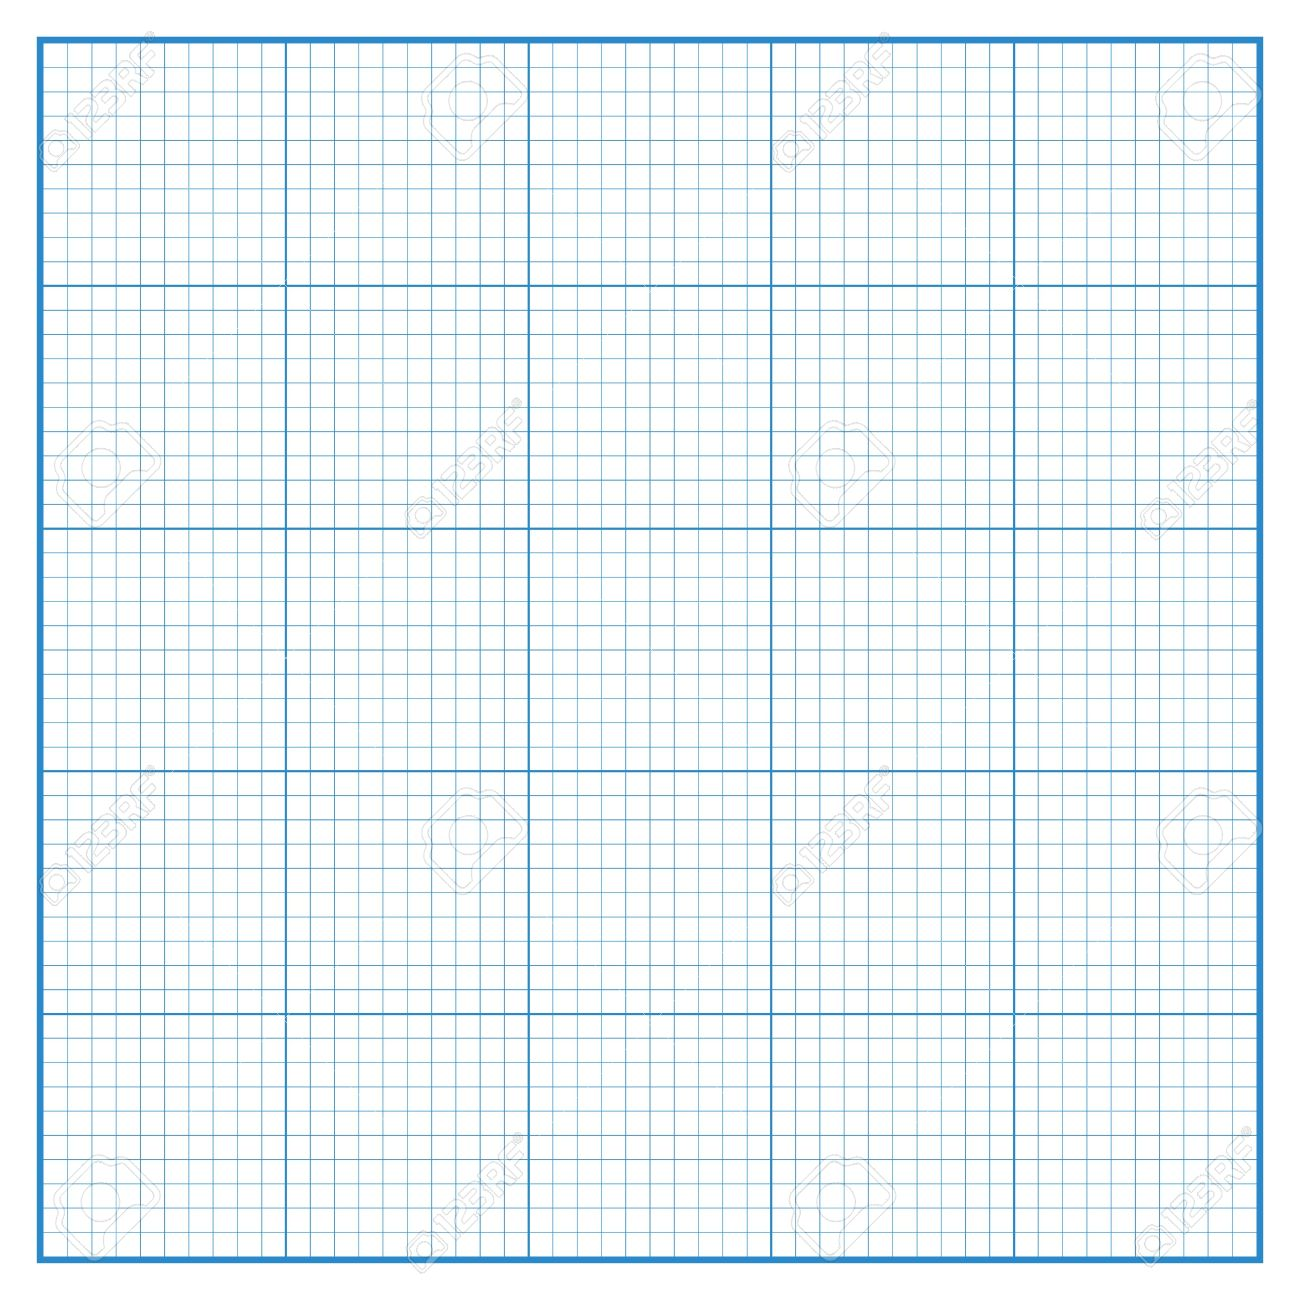 Vector Square Engineering Graph Paper With 5 Metric Divisions.